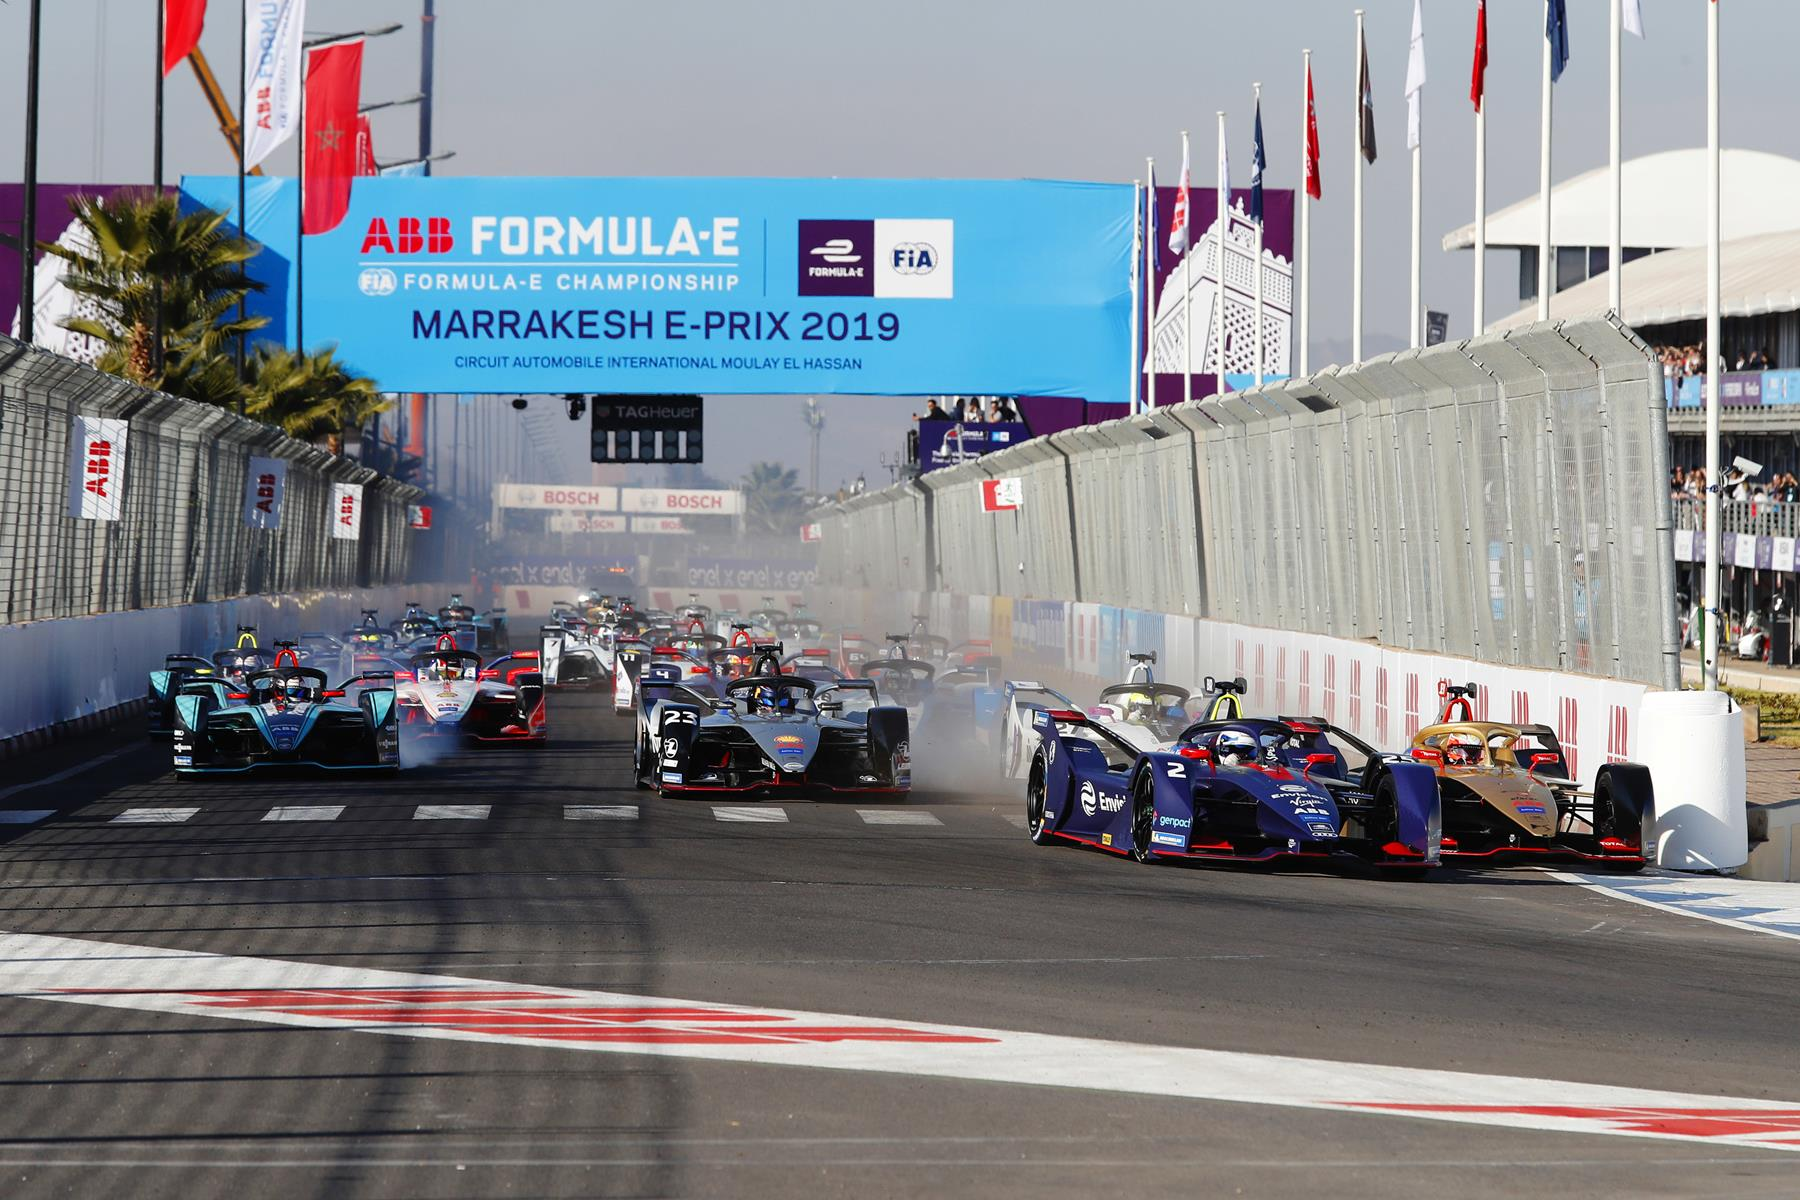 Bird-vs-Vergne-at-Start-in-Marrakesh